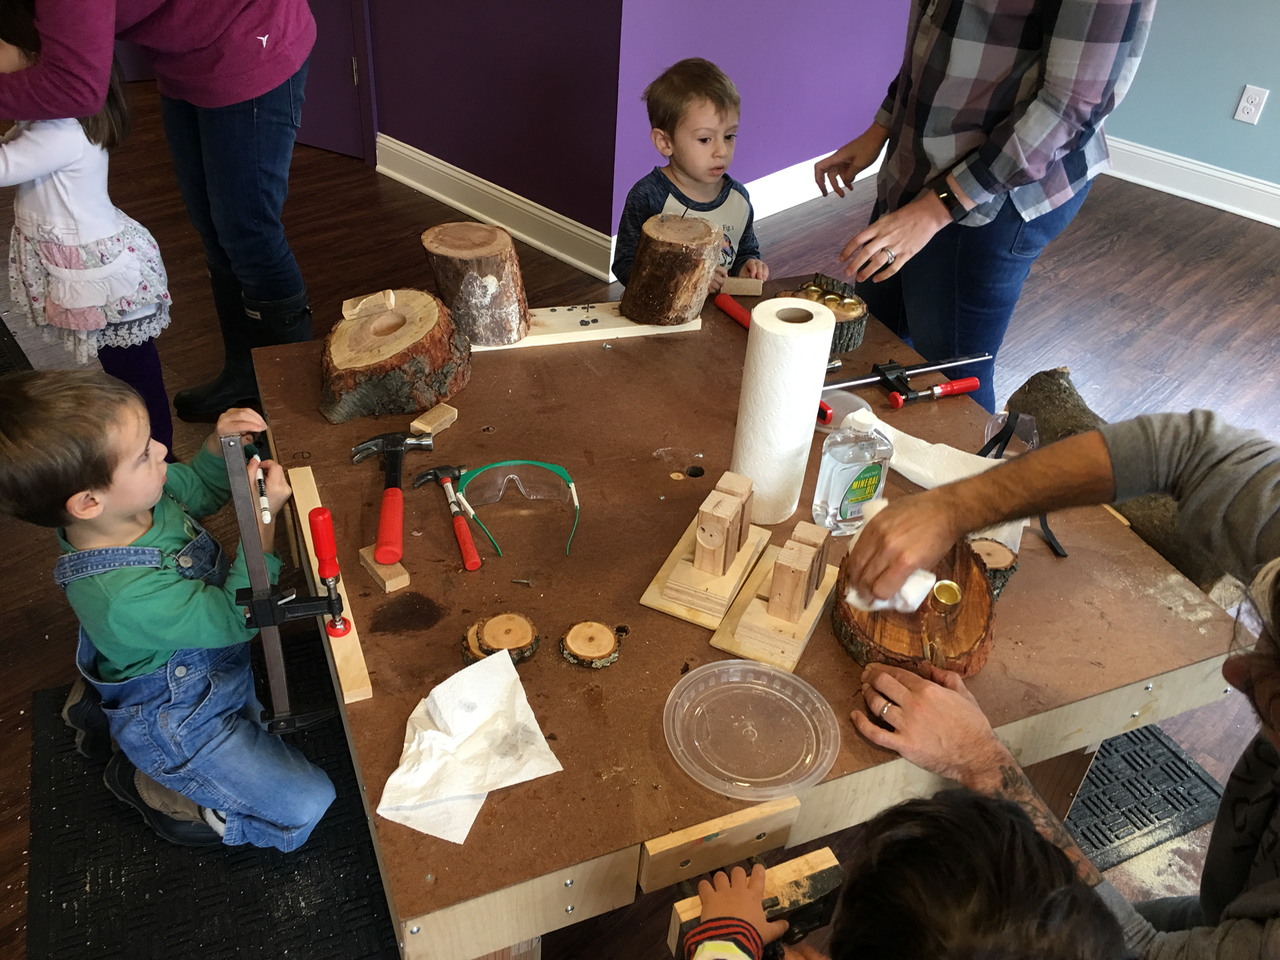 Toddlers can explore and grow in a safe, supervised enviroment